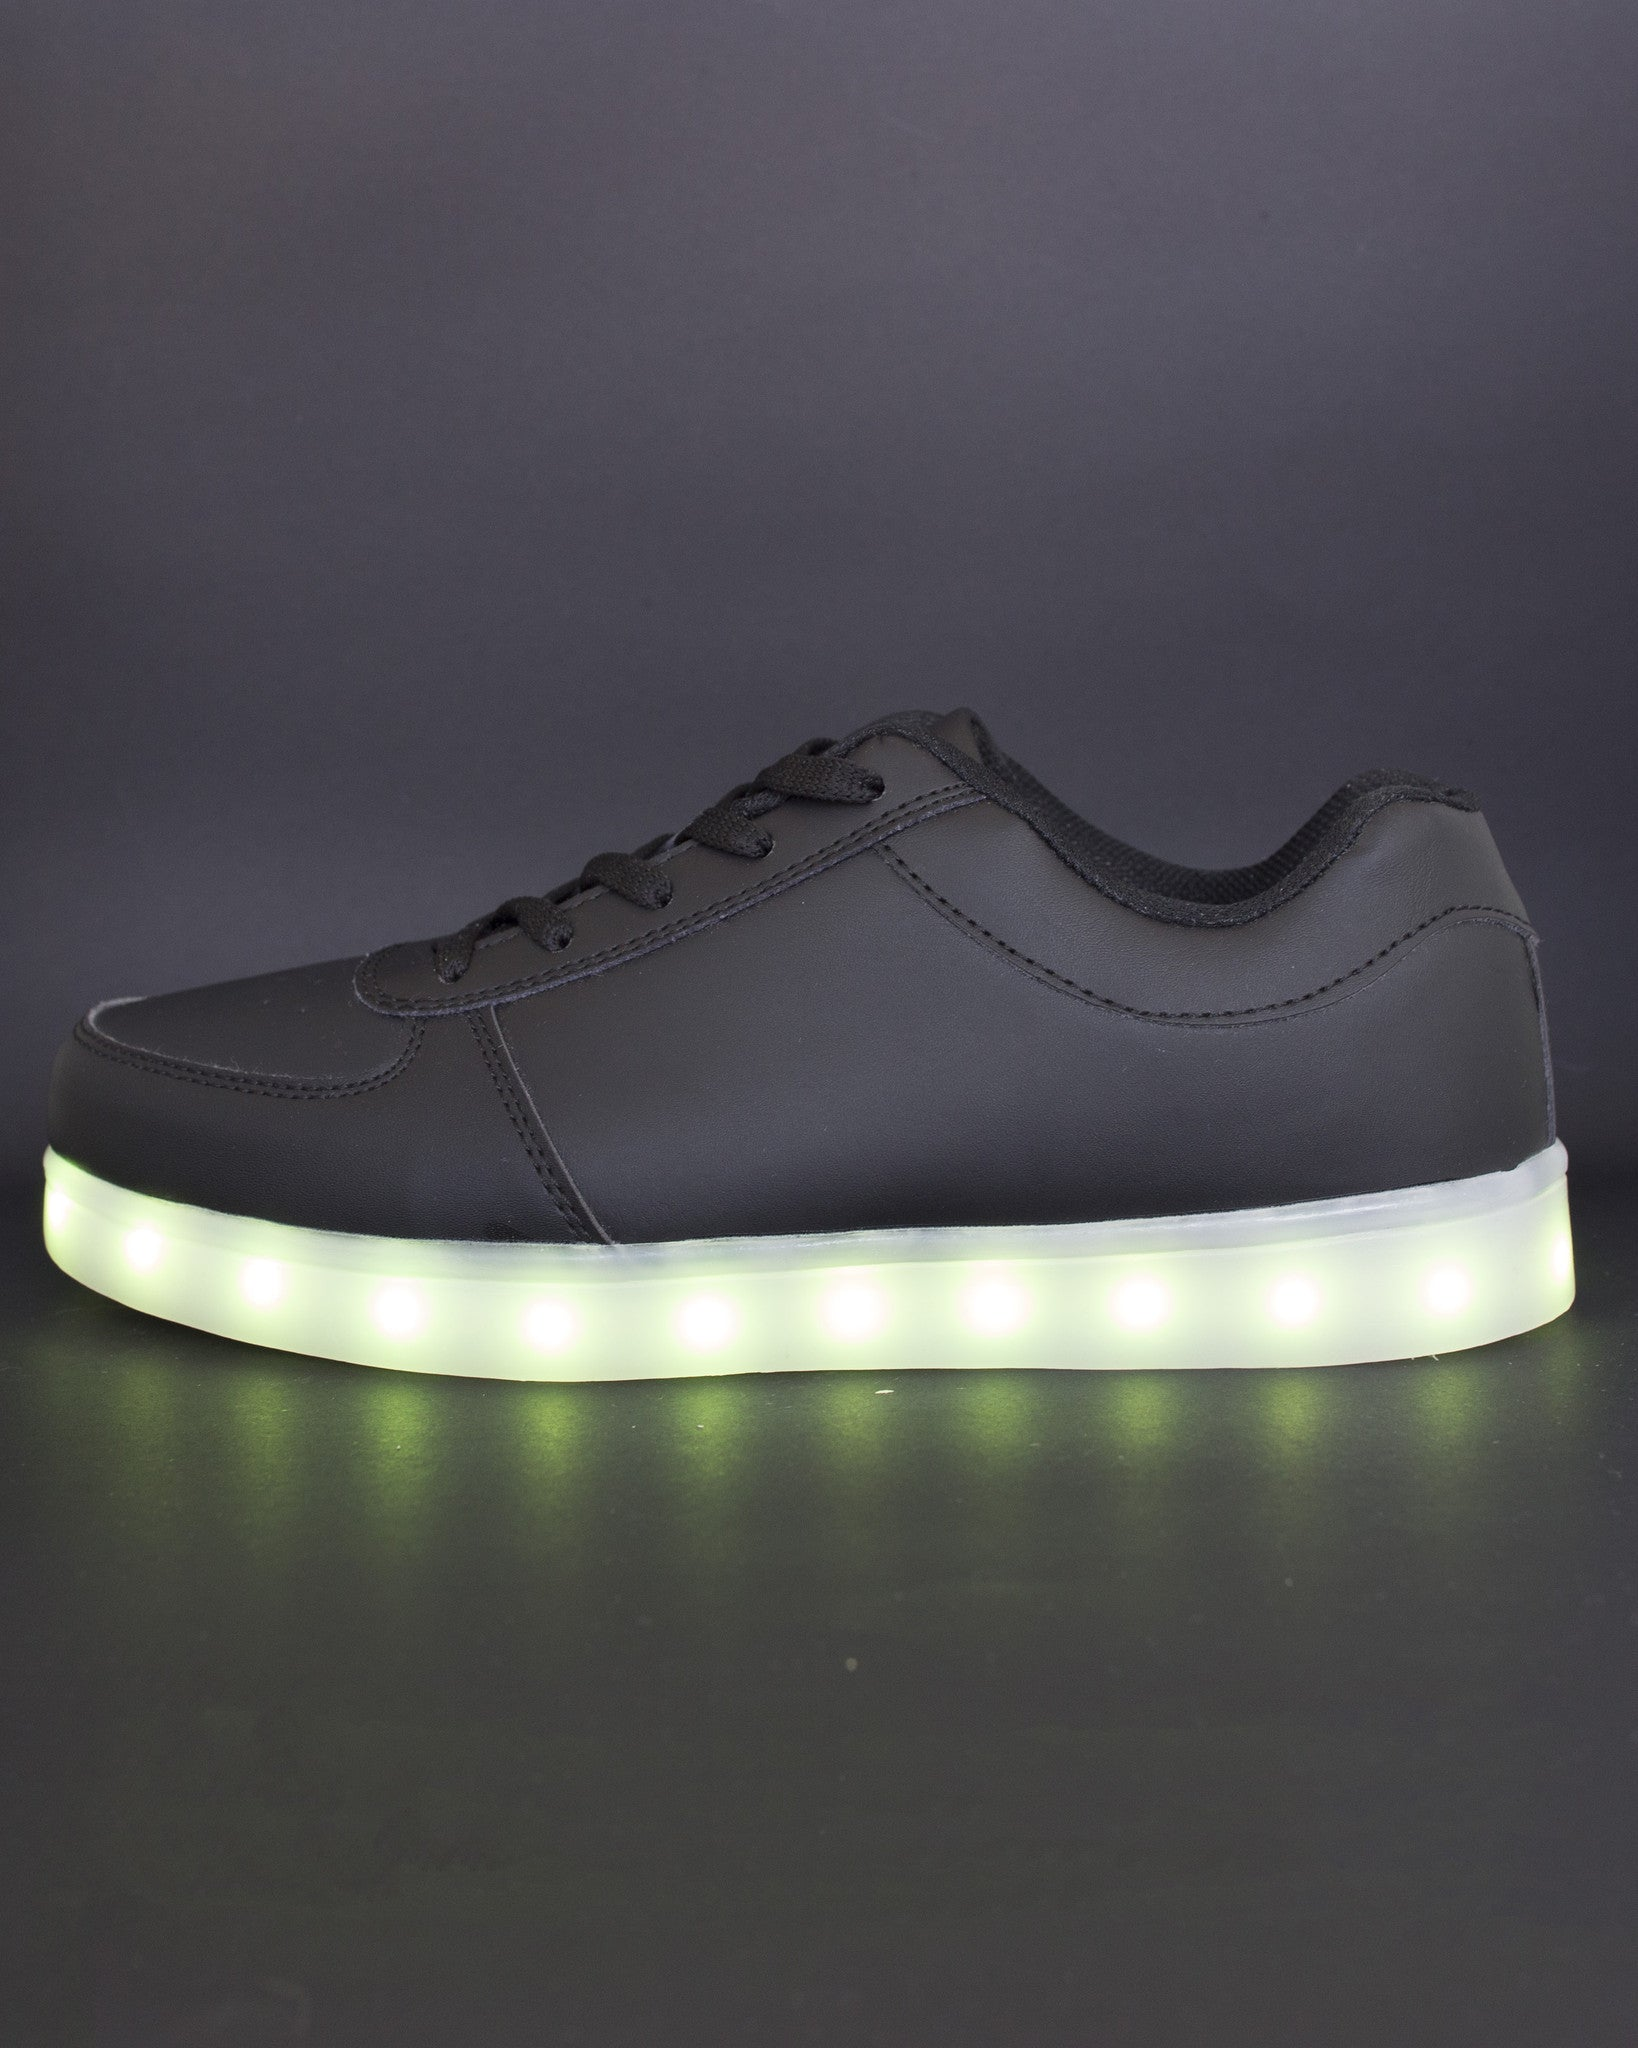 Light Up Shoes - All Black - Electric Styles | World's Number 1 Light Up Shoe Store - {product_type}} -  - 10